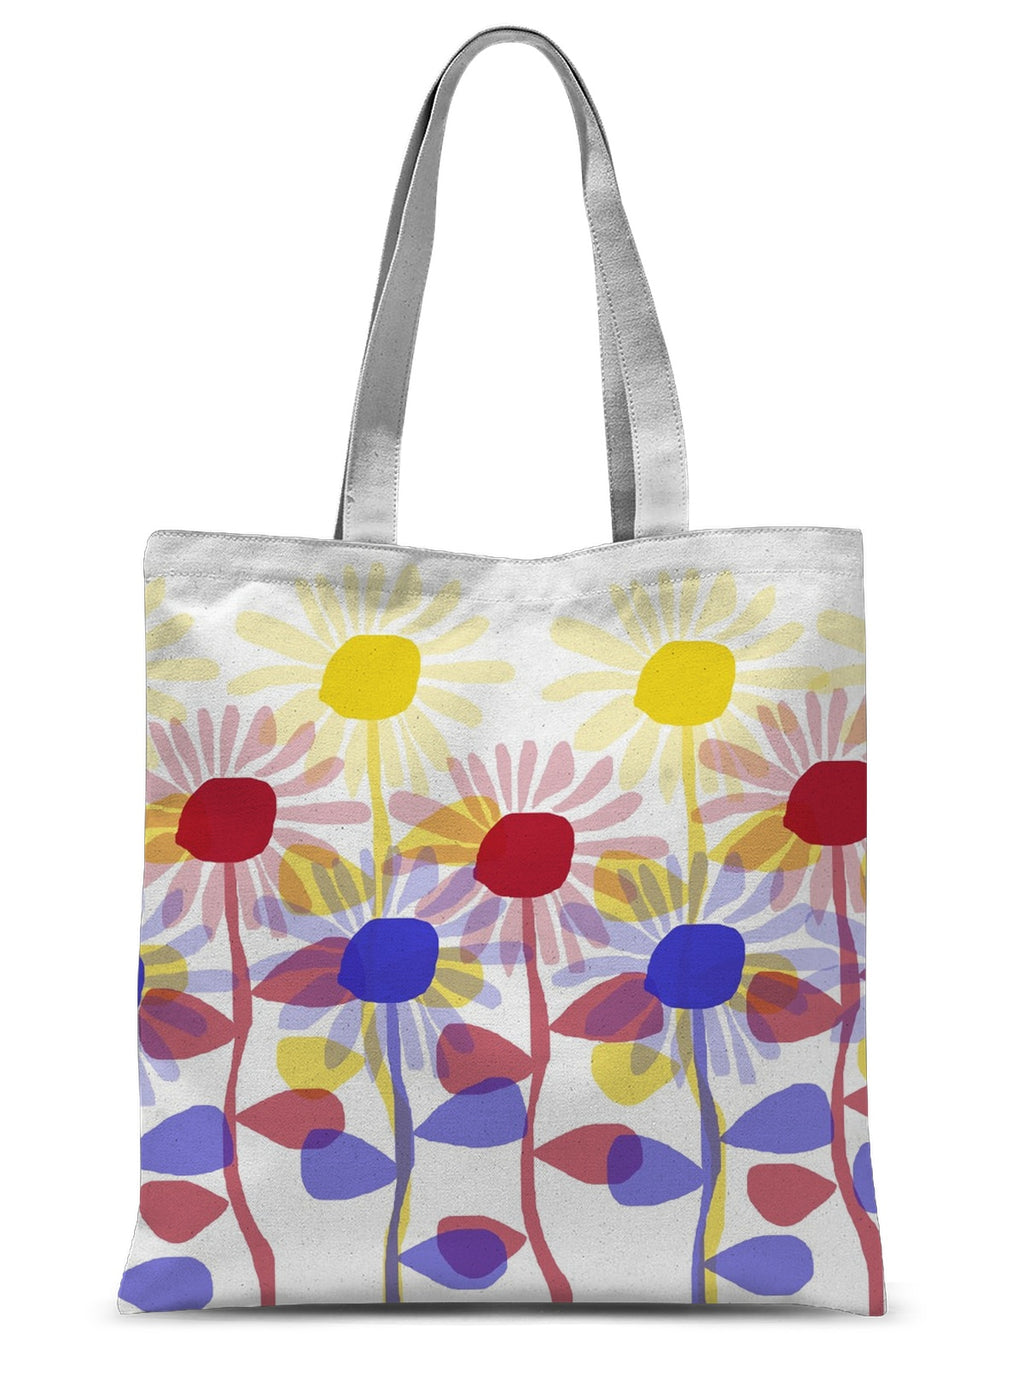 Red Yellow Blue Sunflowers Sublimation Tote Bag - expressive-flower-art-goods.myshopify.com